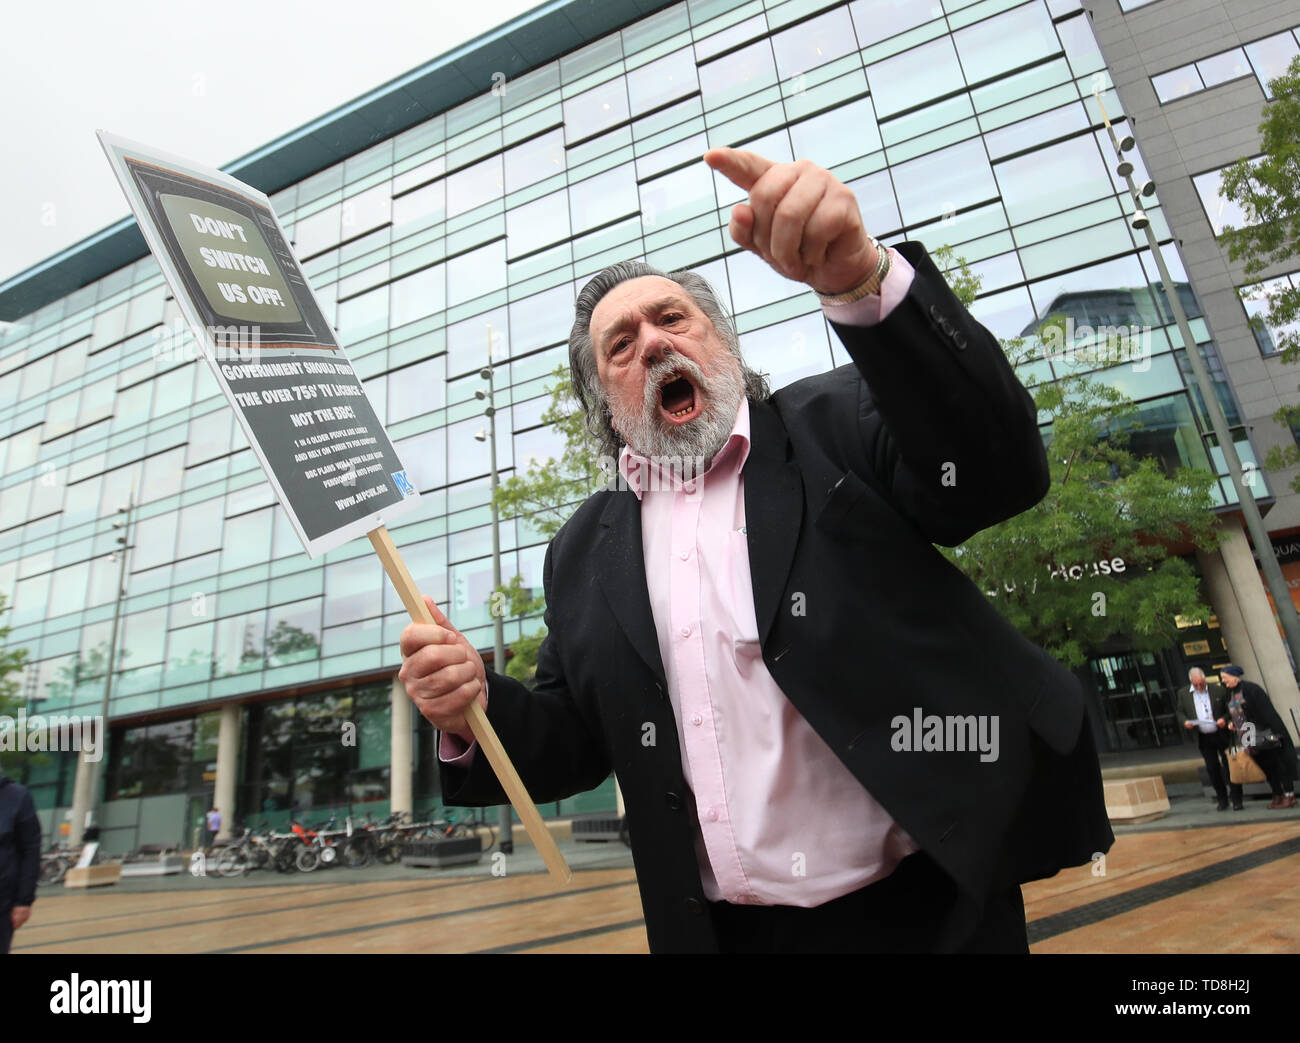 Ricky Tomlinson protests outside BBC Media City in Salford, Greater Manchester, at the broadcaster's decision to axe free TV licences for 3.7 million pensioners. Stock Photo